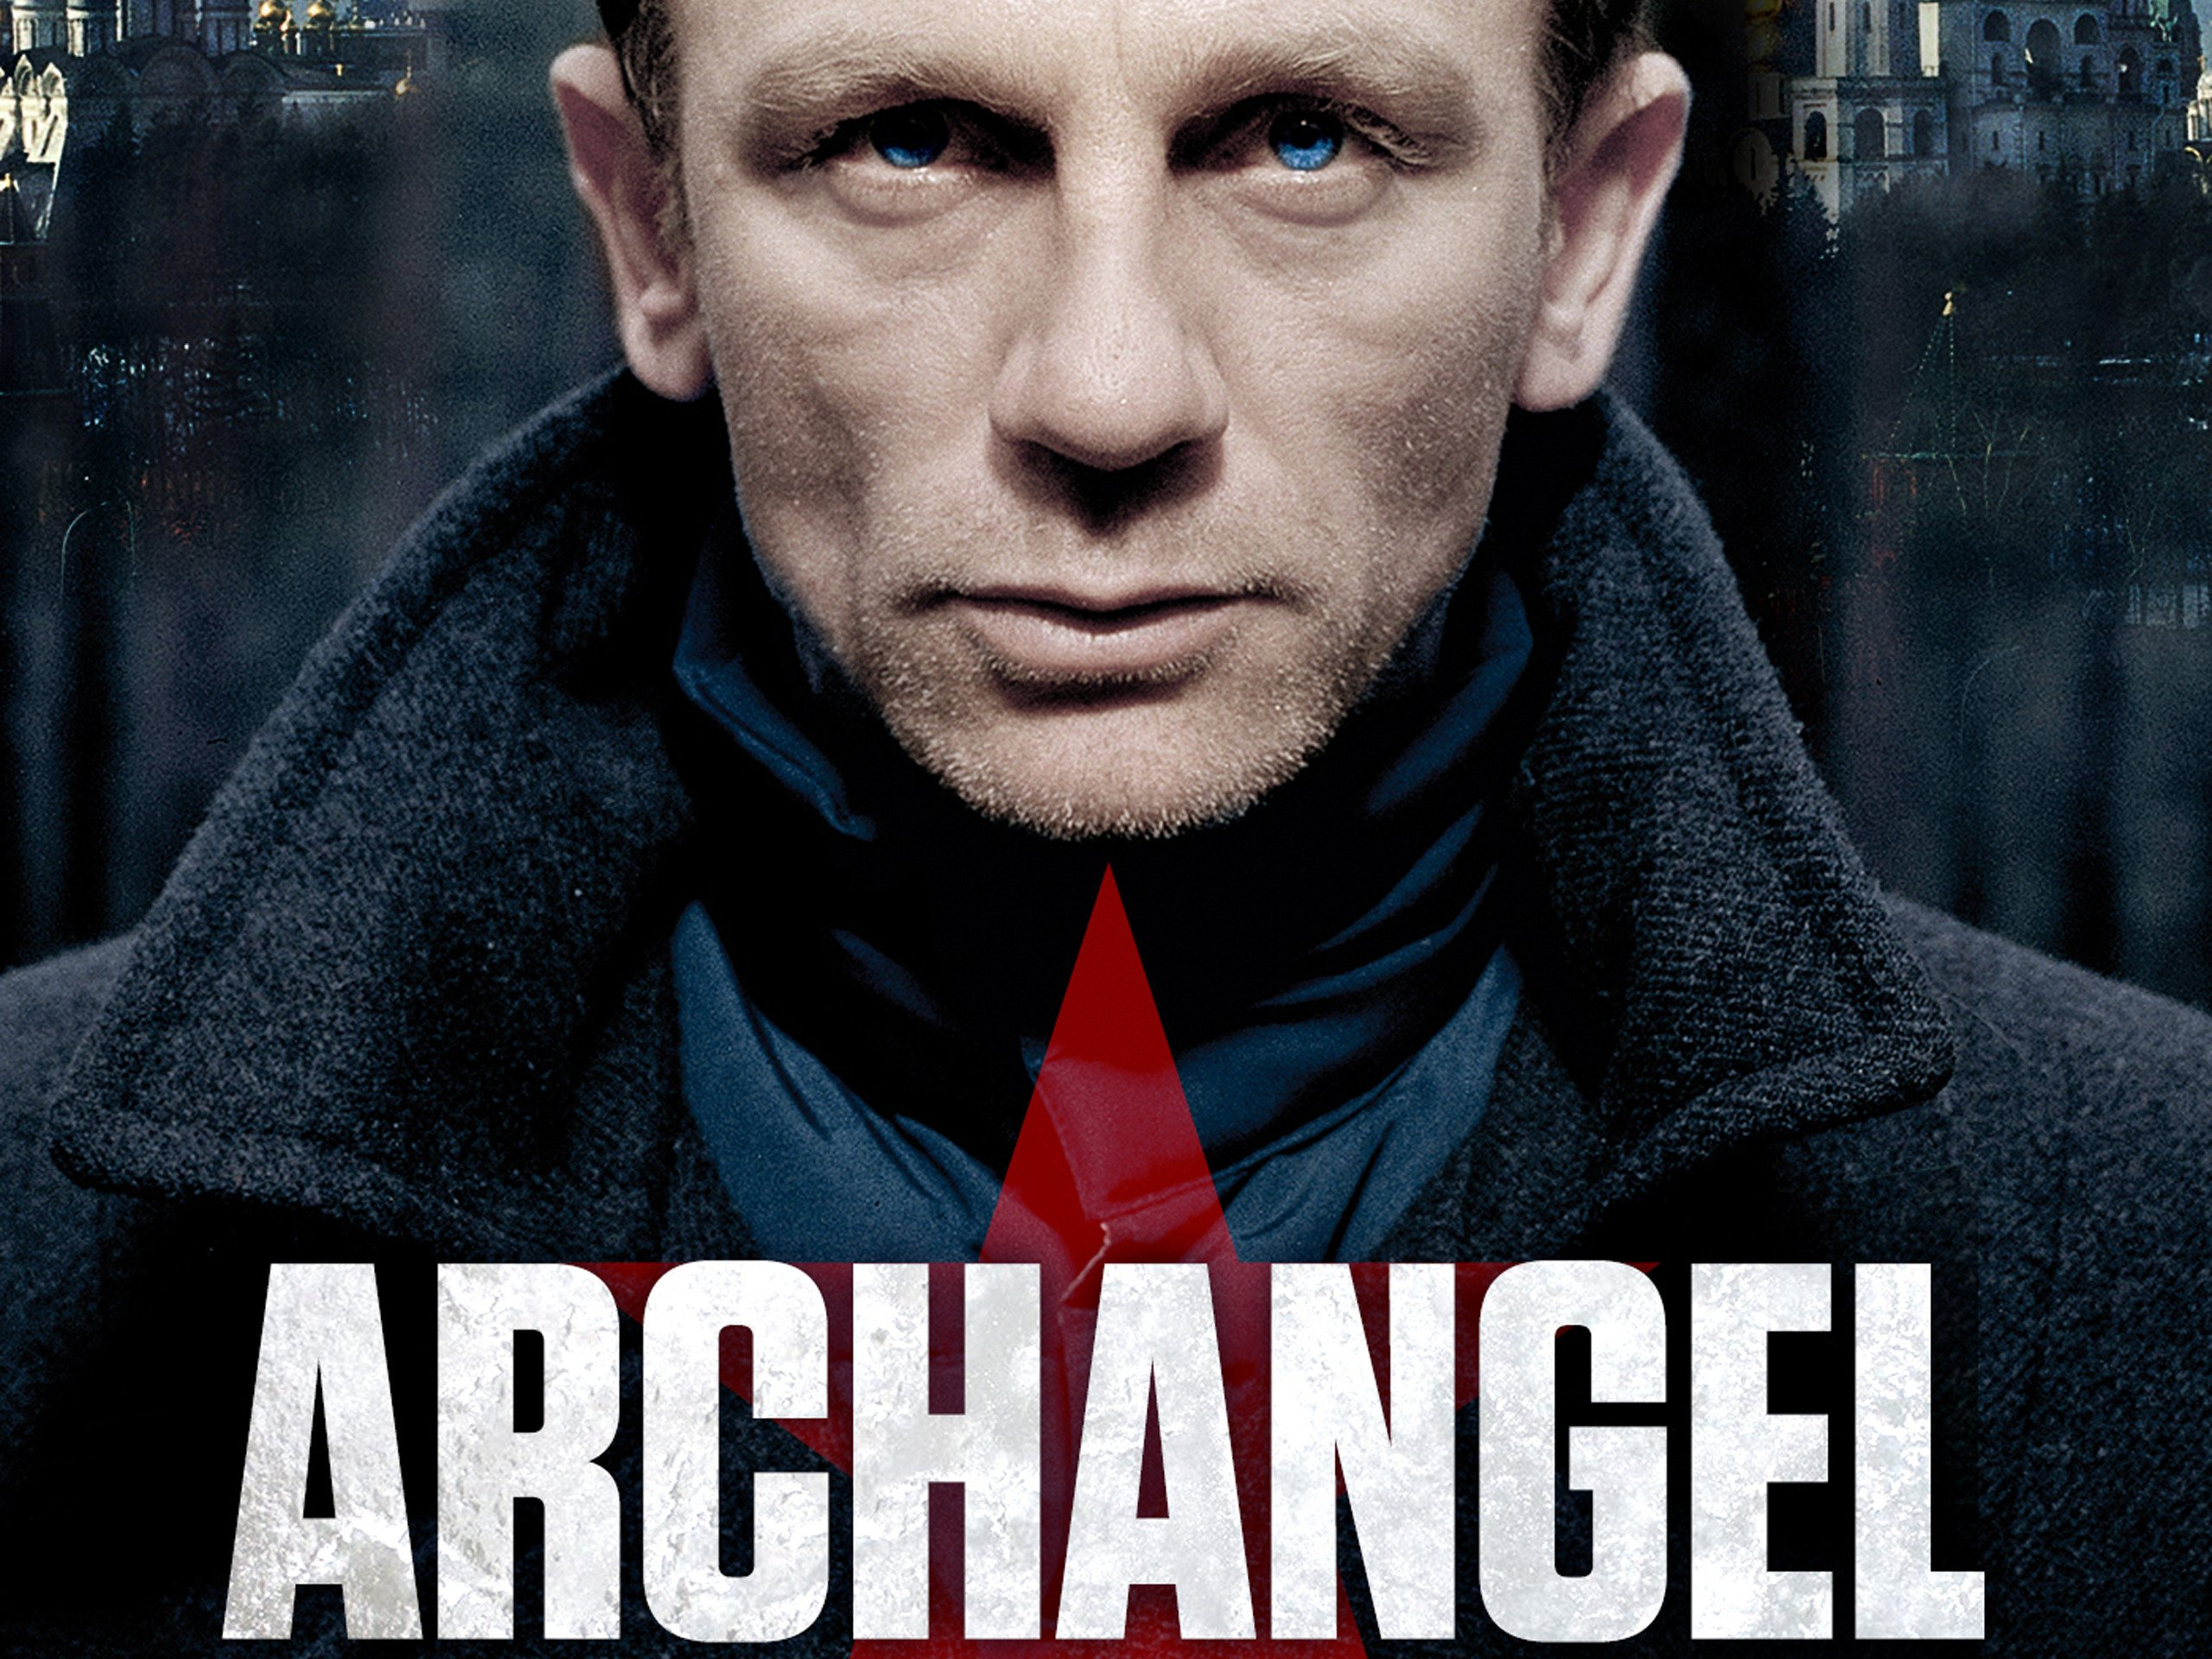 Watch Archangel Prime Video